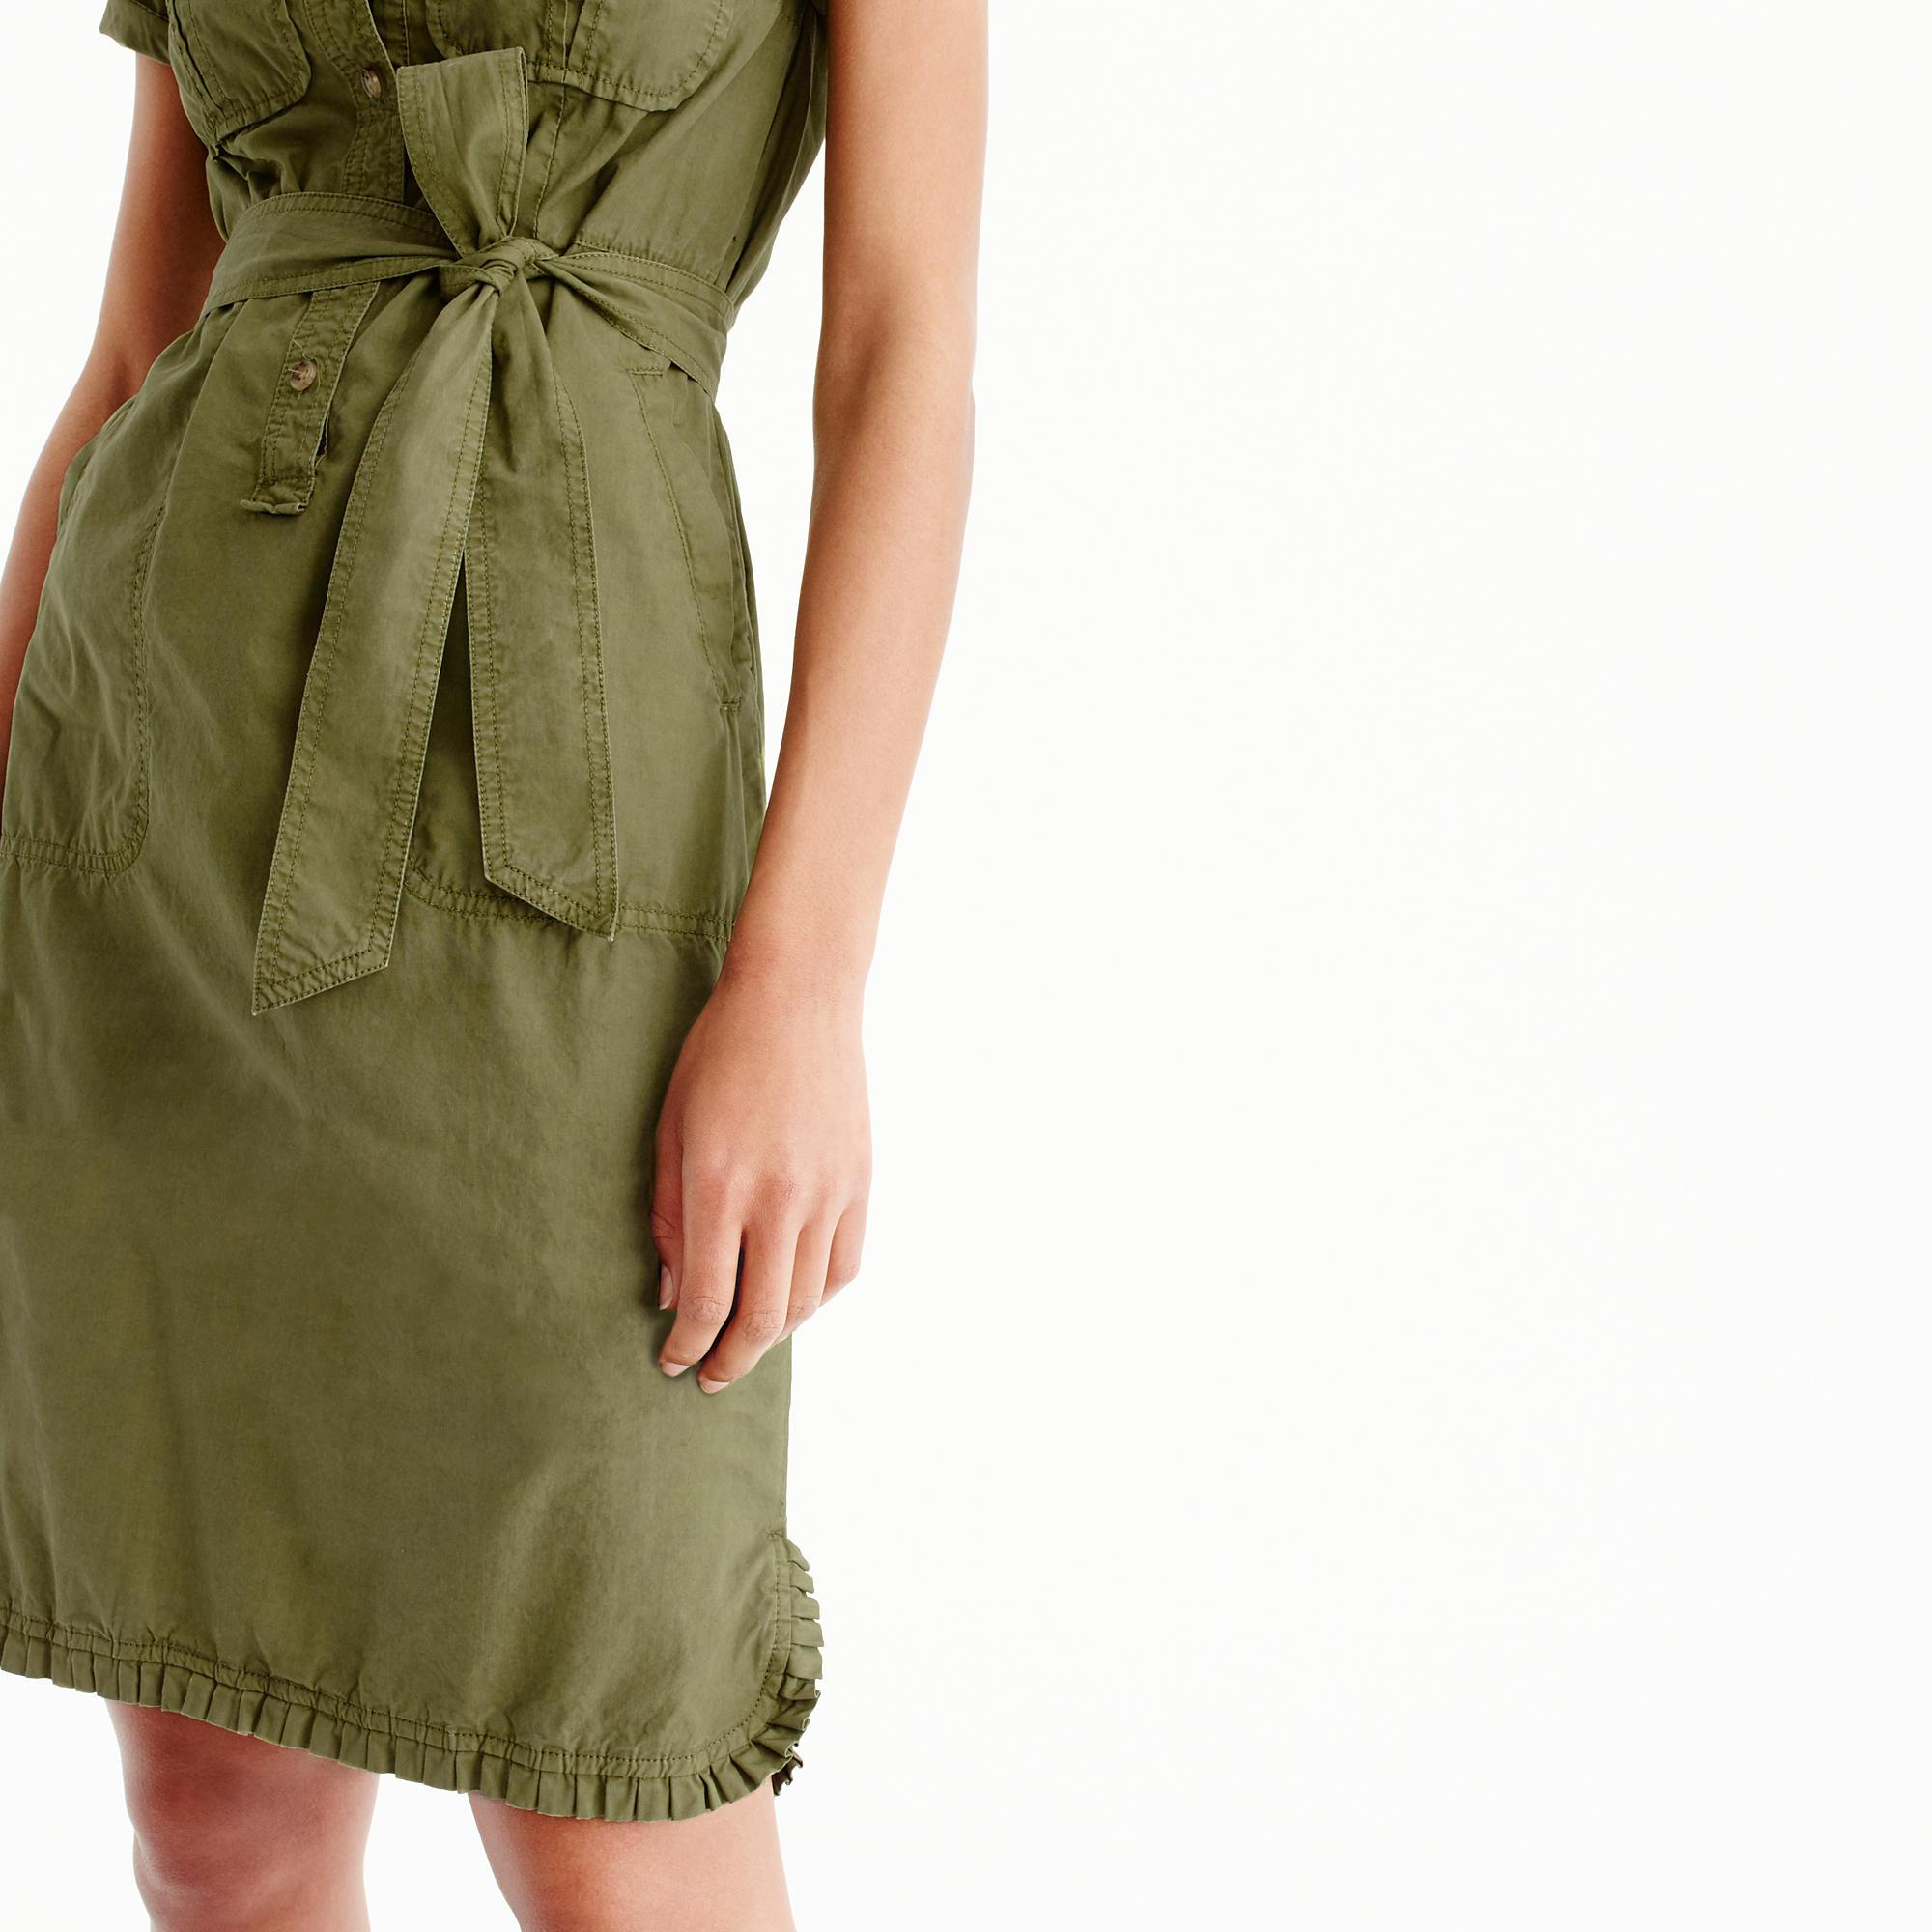 bb1d27aac2 J.Crew Ruffle-hem Utility Dress in Green - Lyst